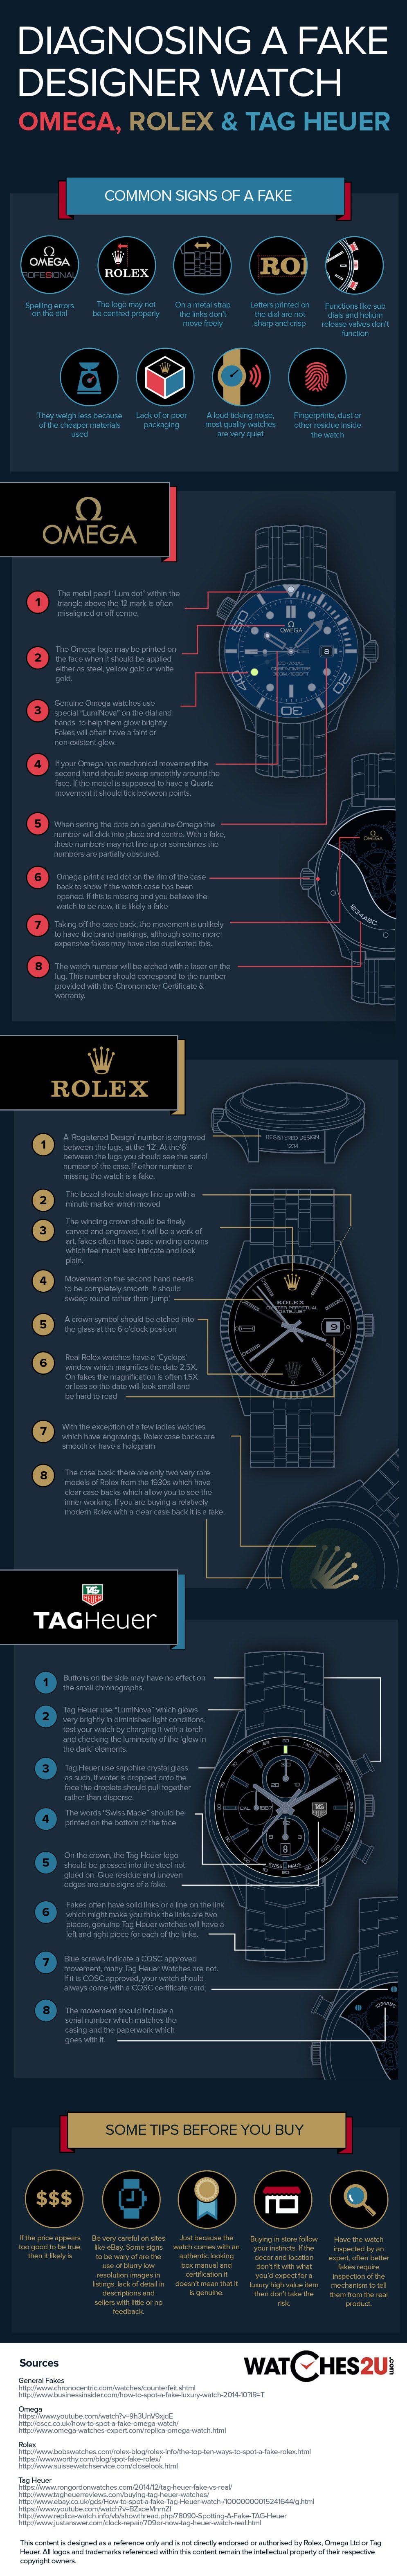 Pozorovací Fake Rolex, Omega Or Tag Heuer Watch, Infographic